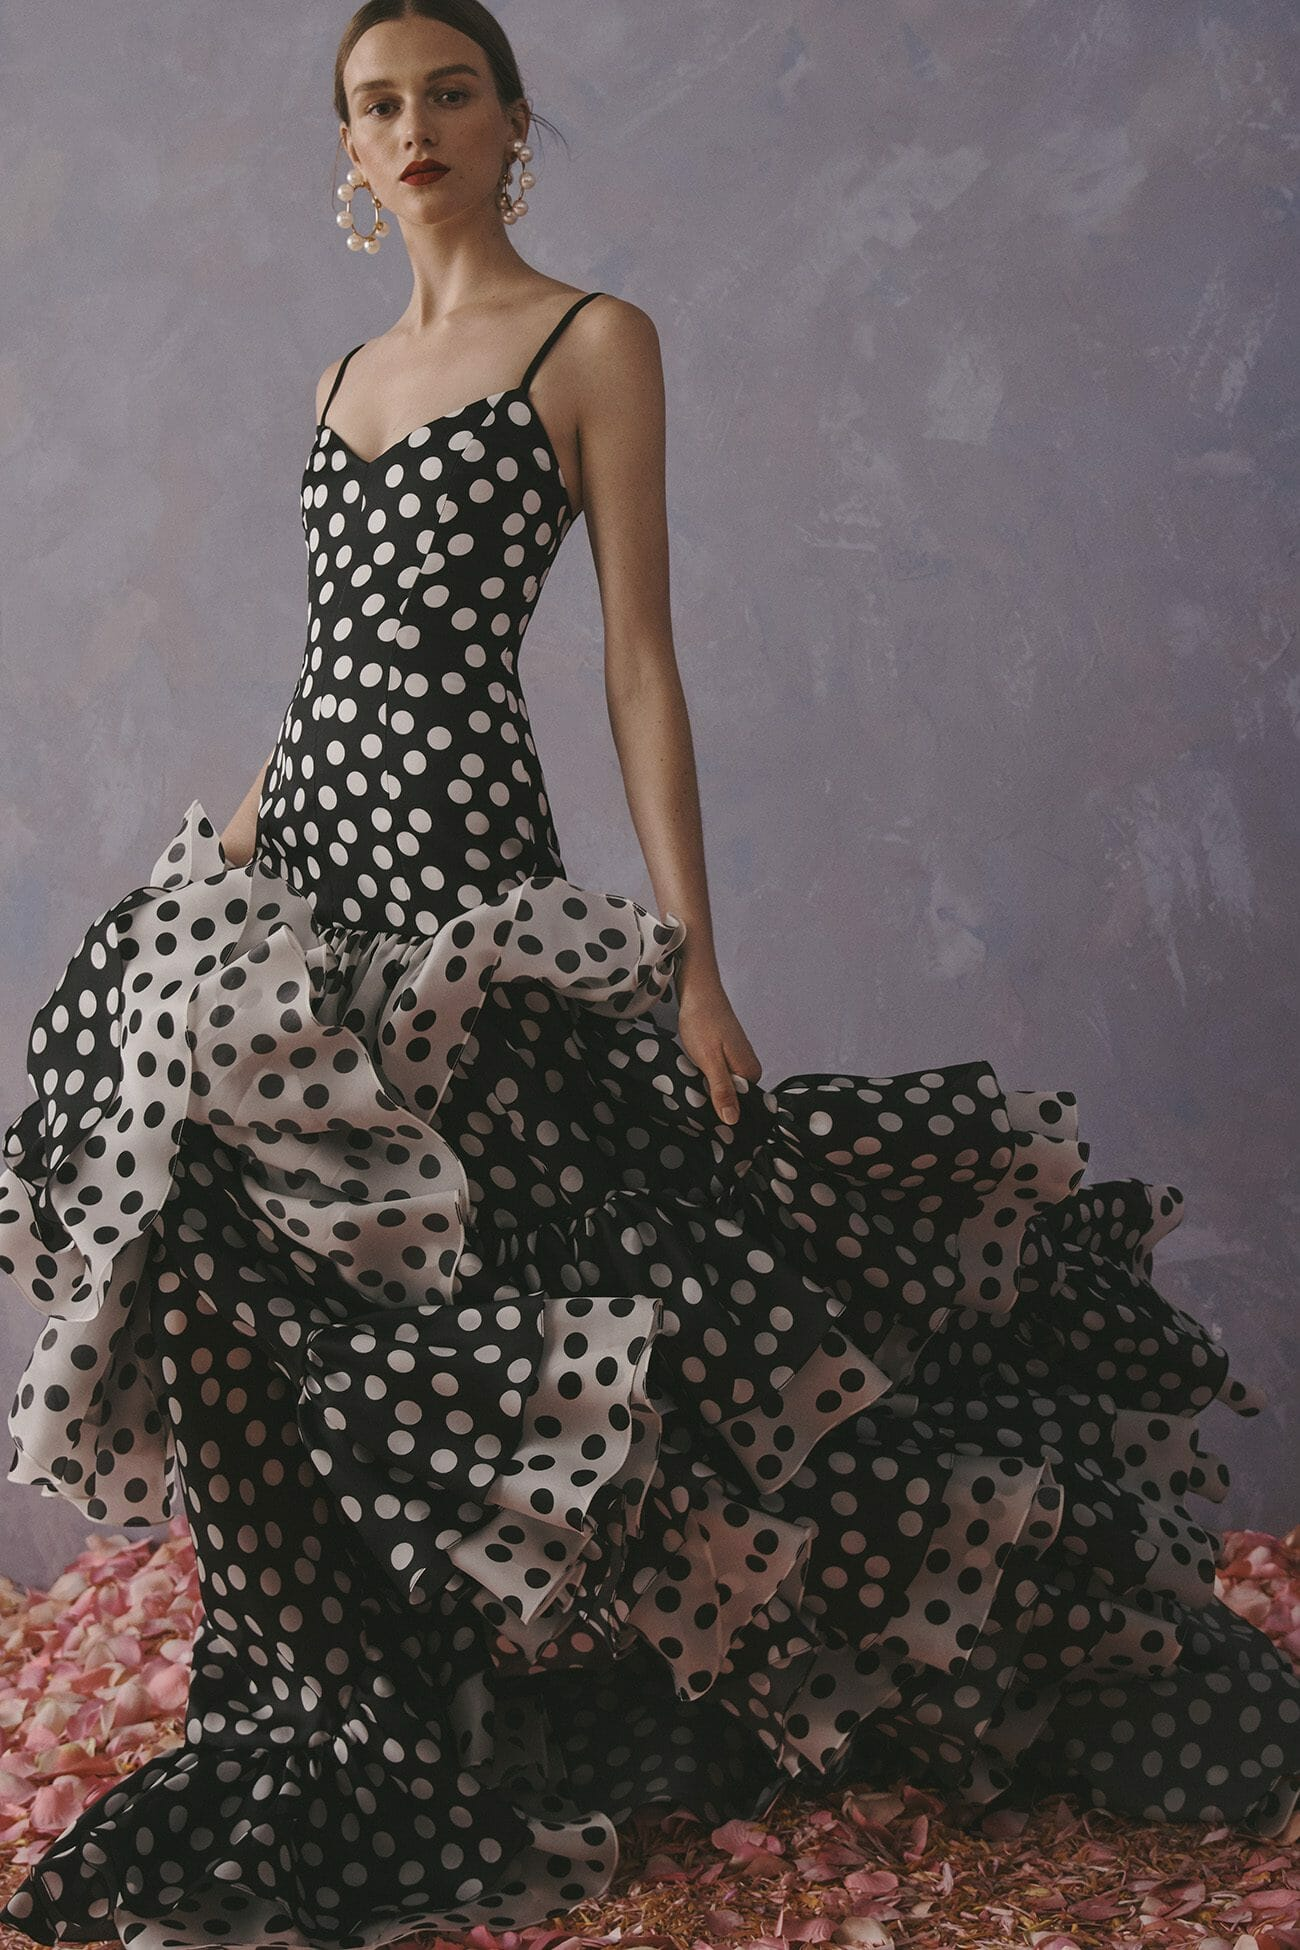 Carolina Herrera New York Resort 2020 Coleção polka dot dress gown black white